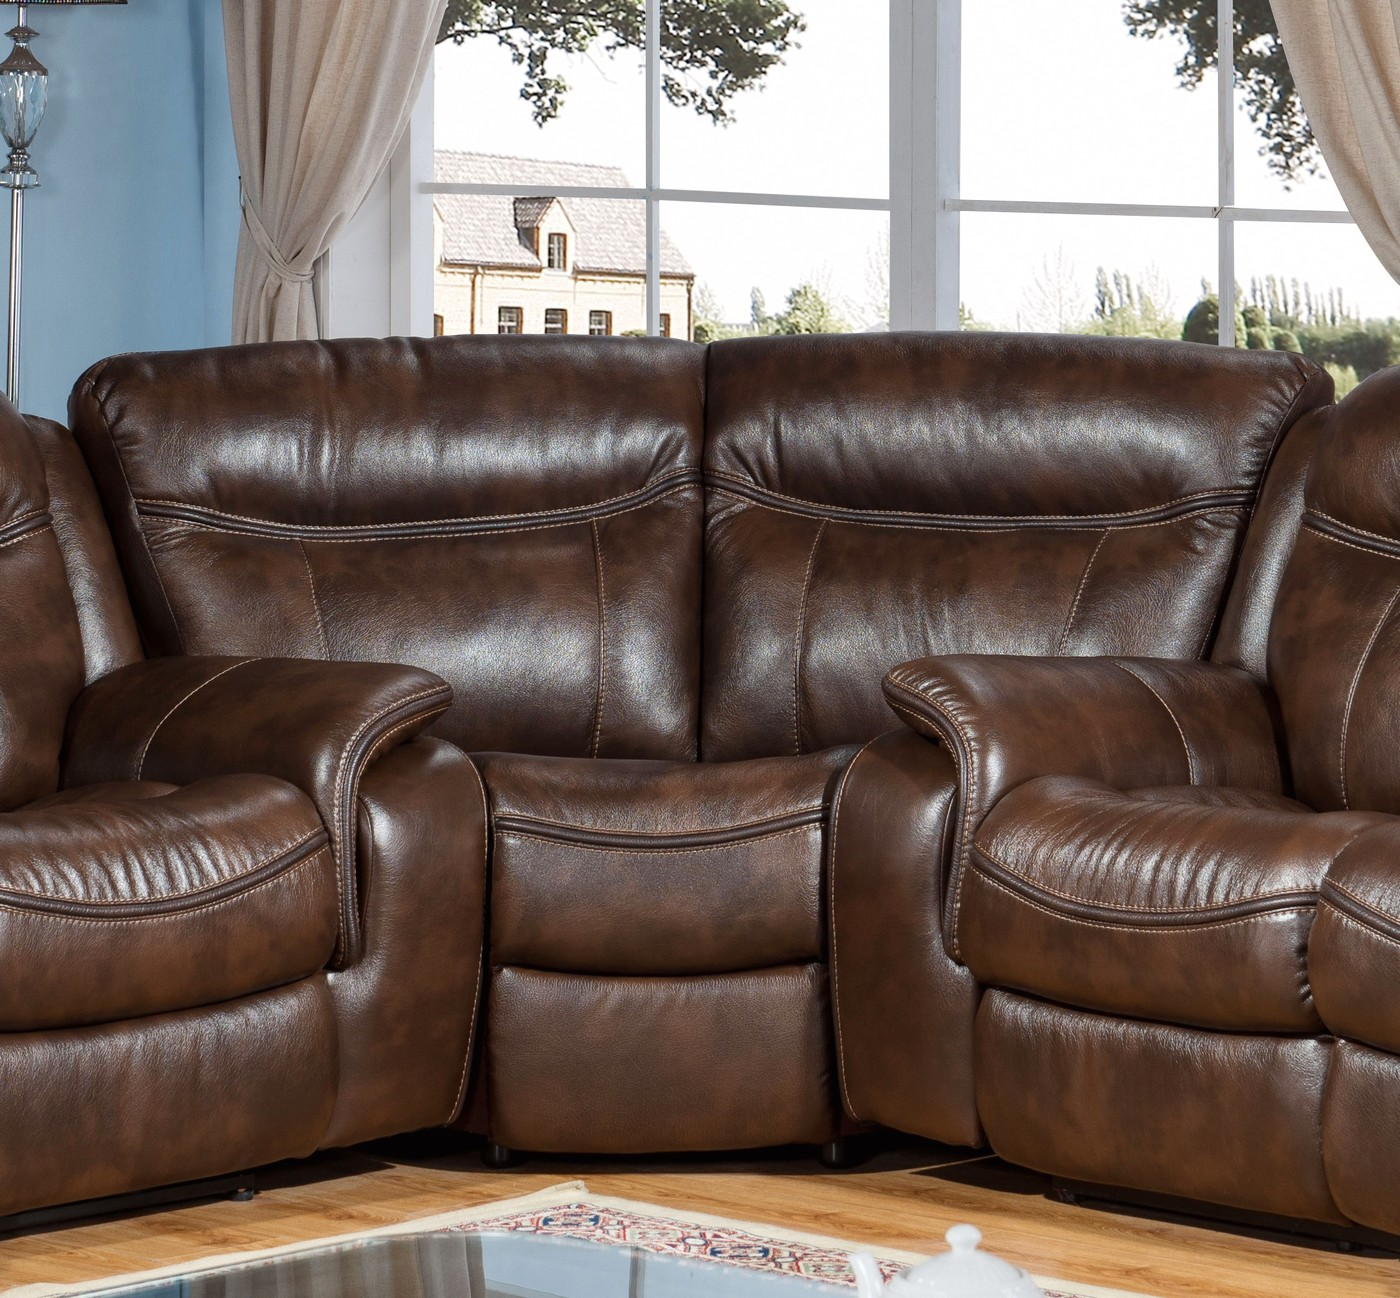 Braylon Classic Brown Sectional Wedge In Premium Leather